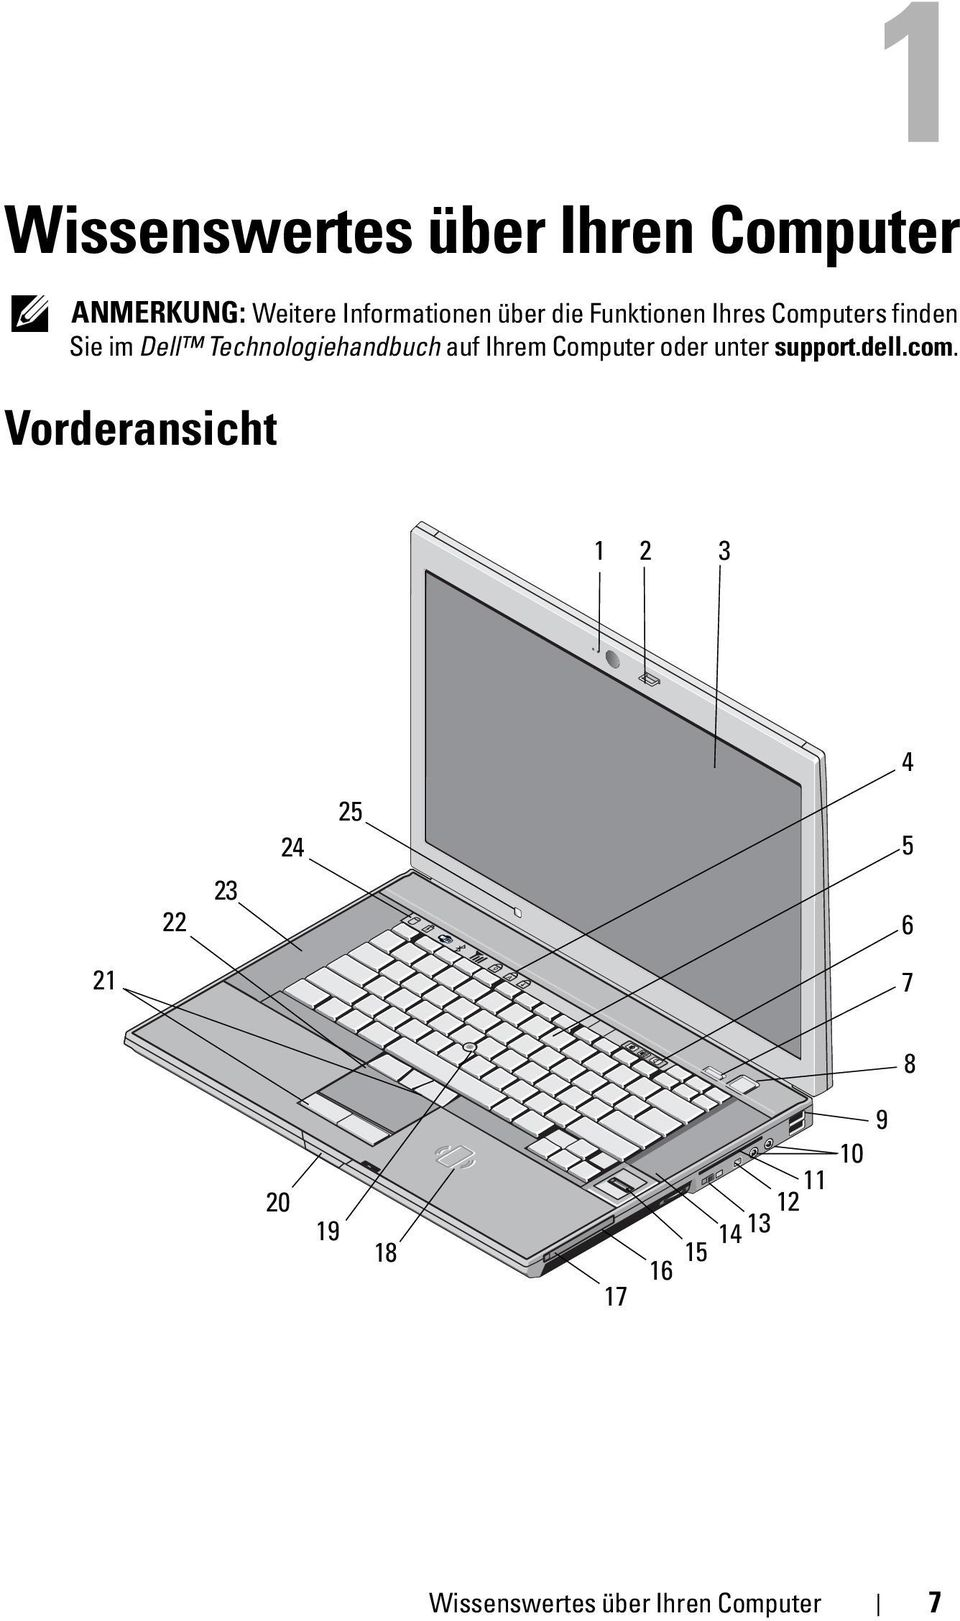 Computer oder unter support.dell.com.